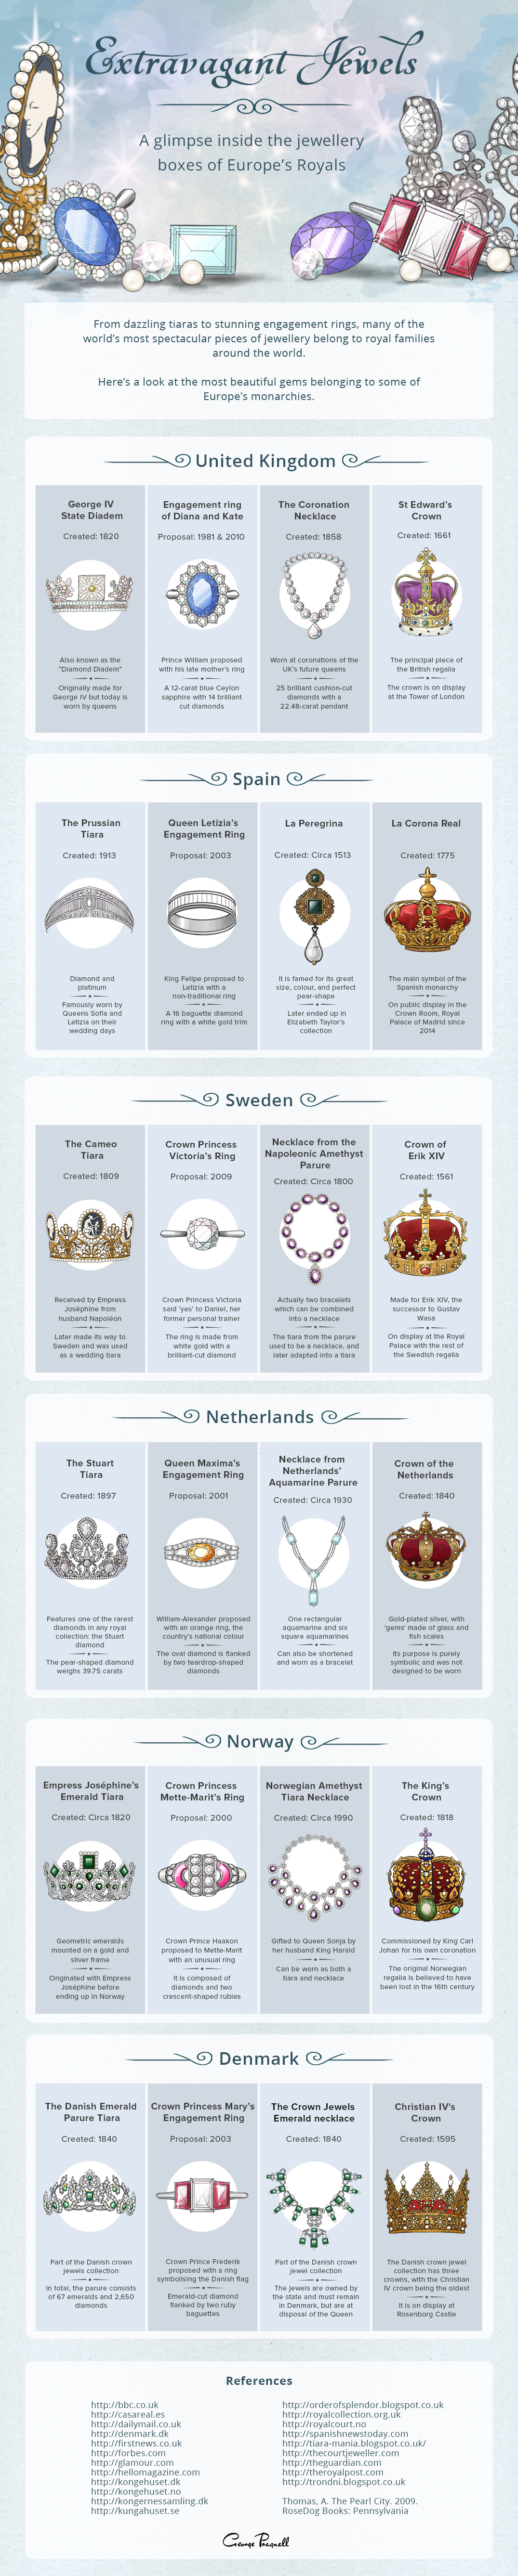 Extravagant Jewels: A glimpse inside the jewellery boxes of Europe's Royals